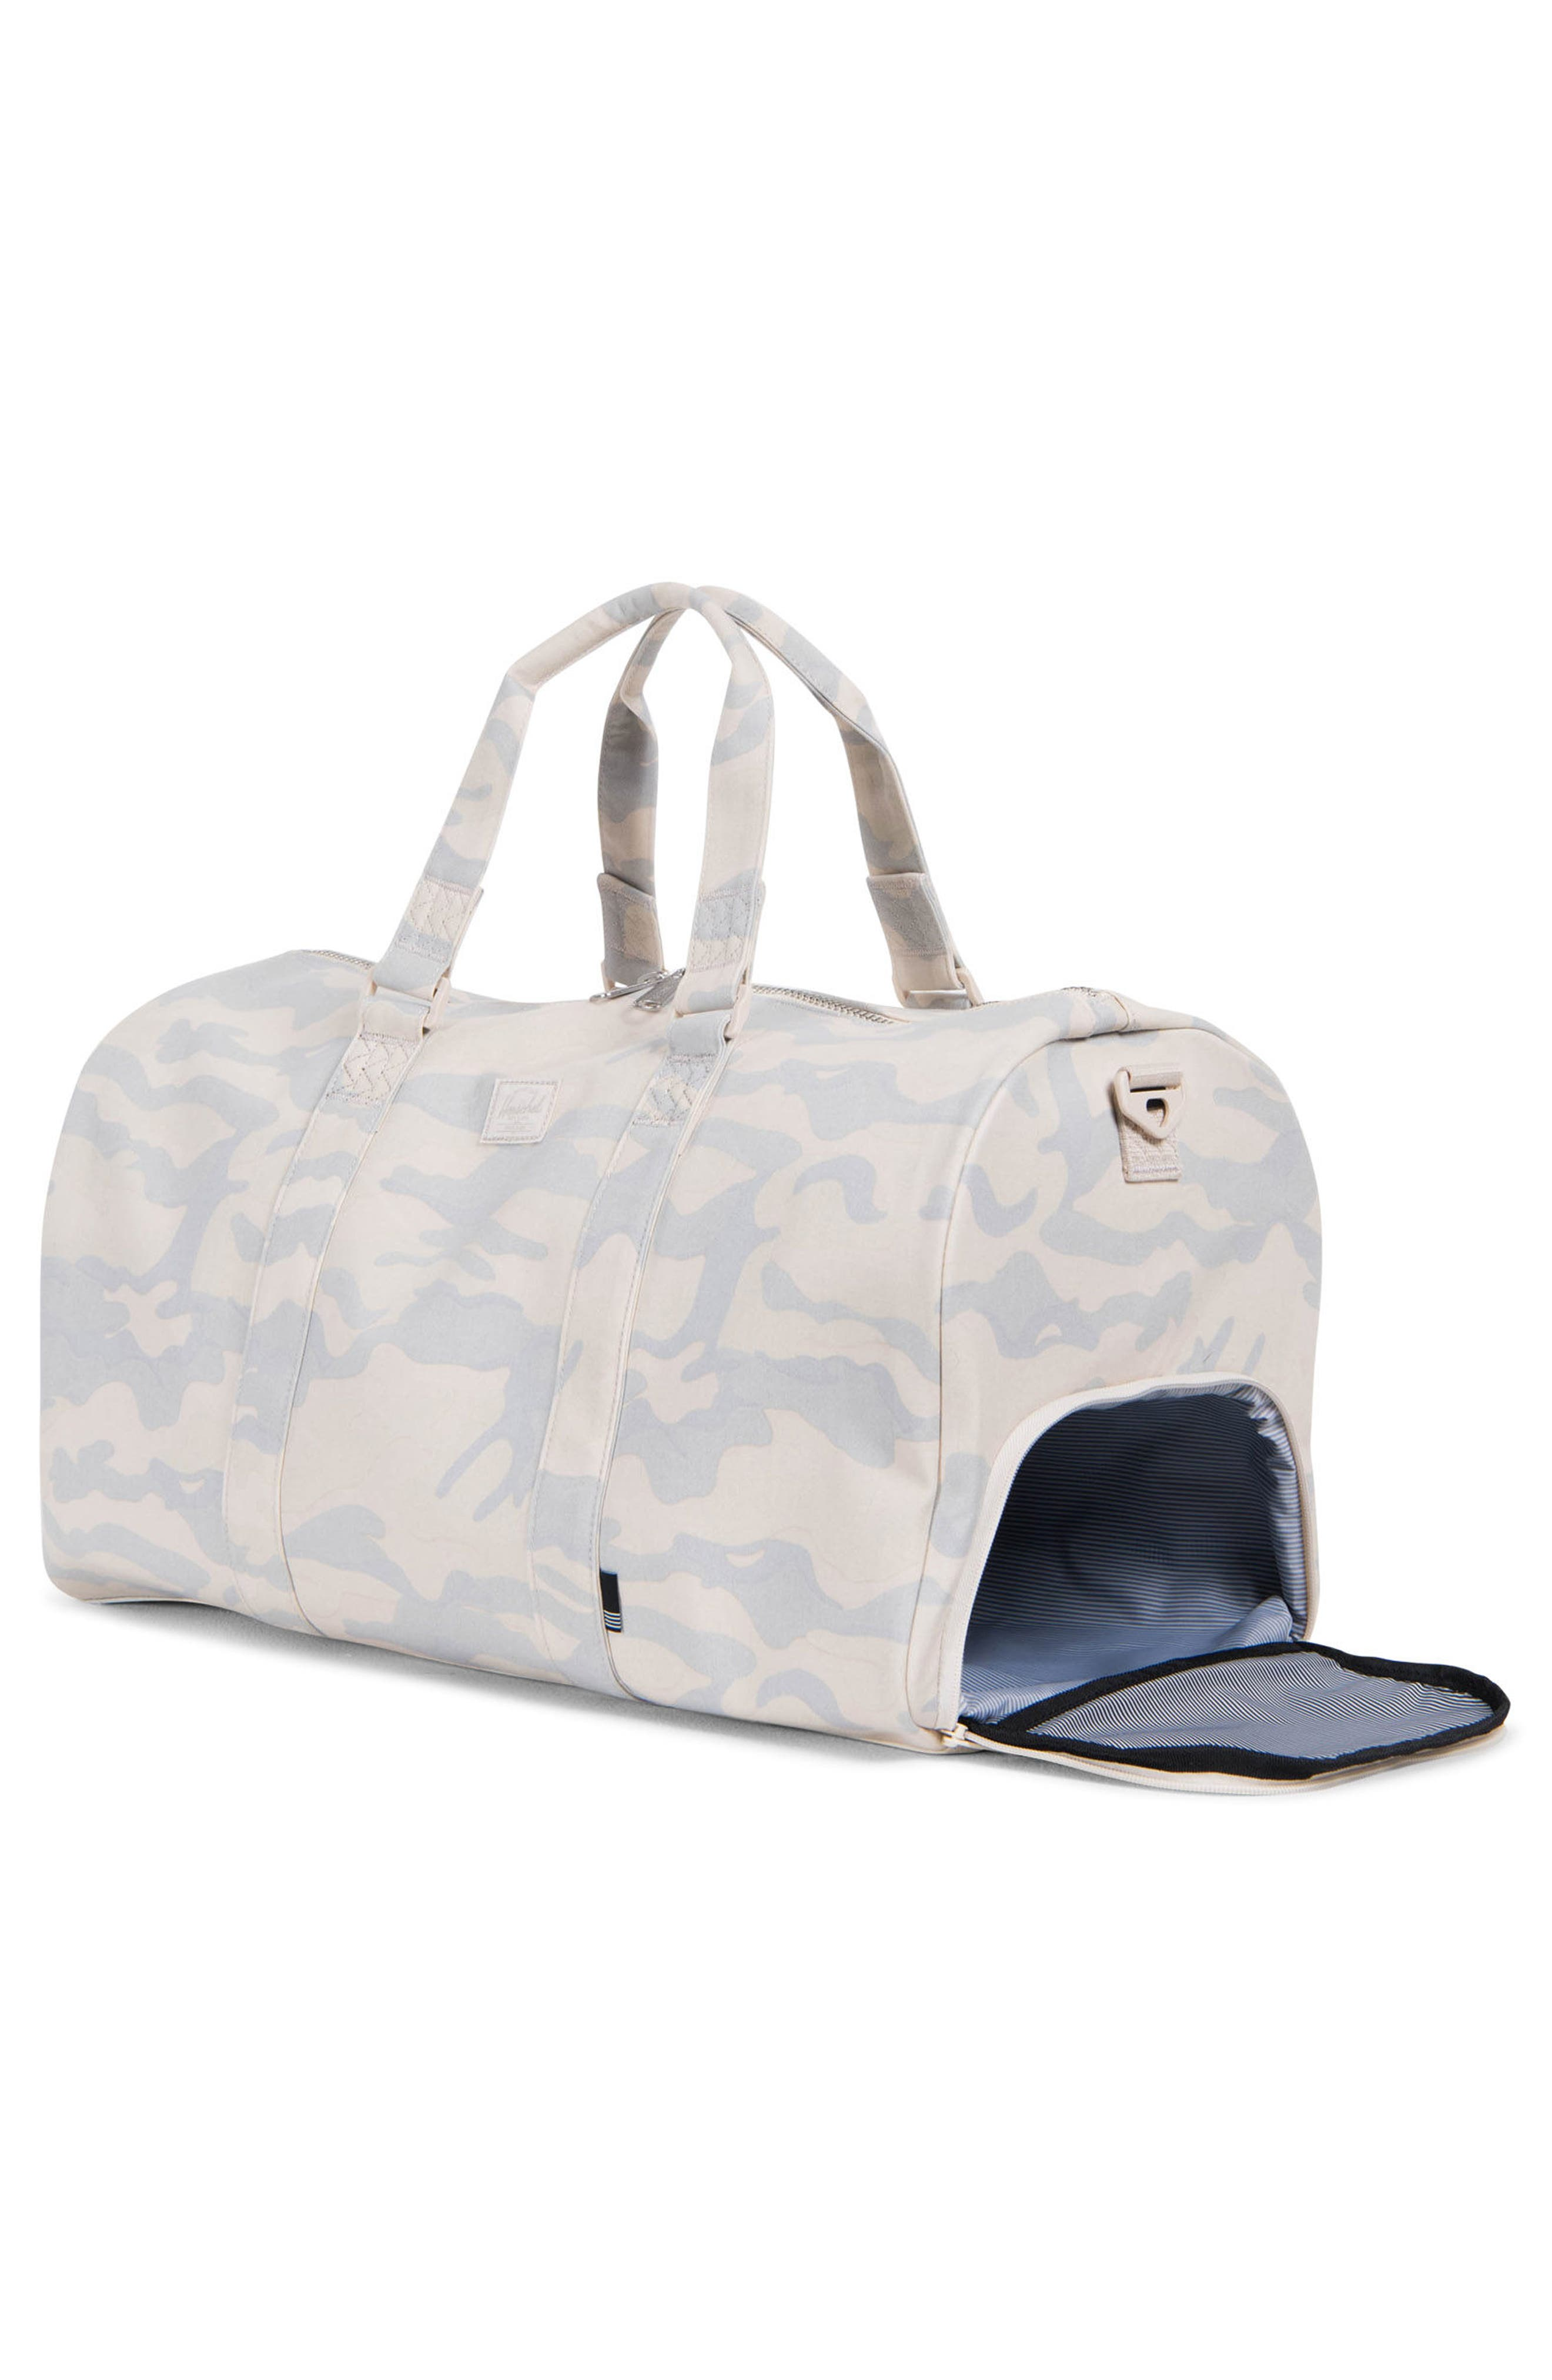 Novel Cotton Canvas Duffel Bag,                             Alternate thumbnail 2, color,                             250